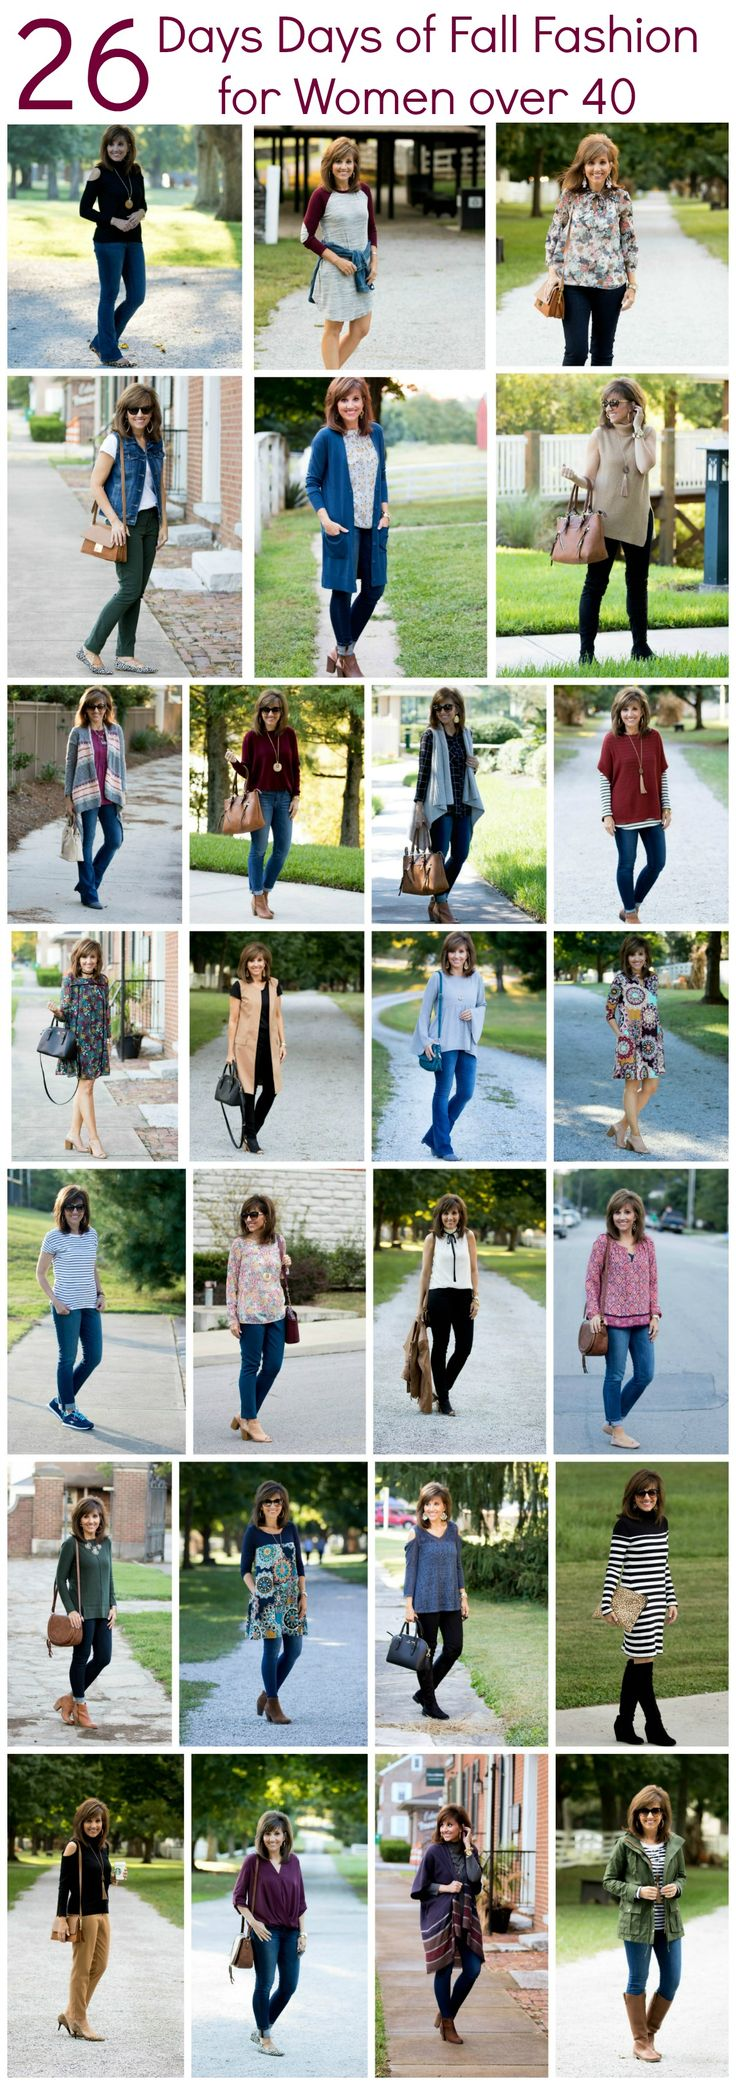 I'm finally getting around to sharing my 26 Days of Fall Fashion for Women over 40. This post always takes me longer to do than what I think it will take.